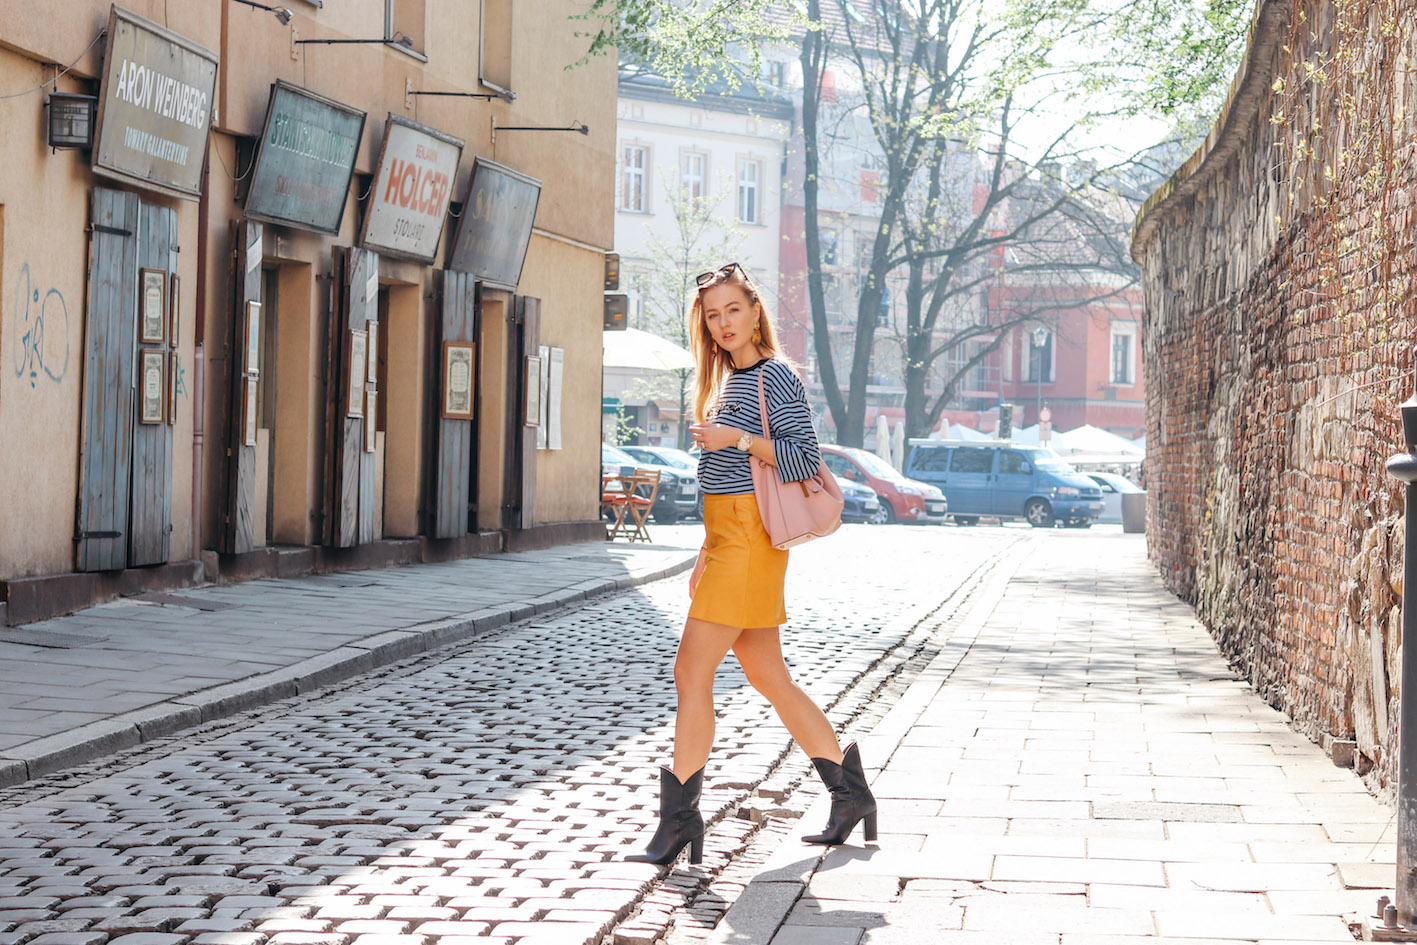 floortjeloves, bonprix, leather skirt, yellow skirt, striped shirt, Krakow, cirytrip, striped top, smaak amsterdam, celine marta, celine sunglasses, bonprix it's me